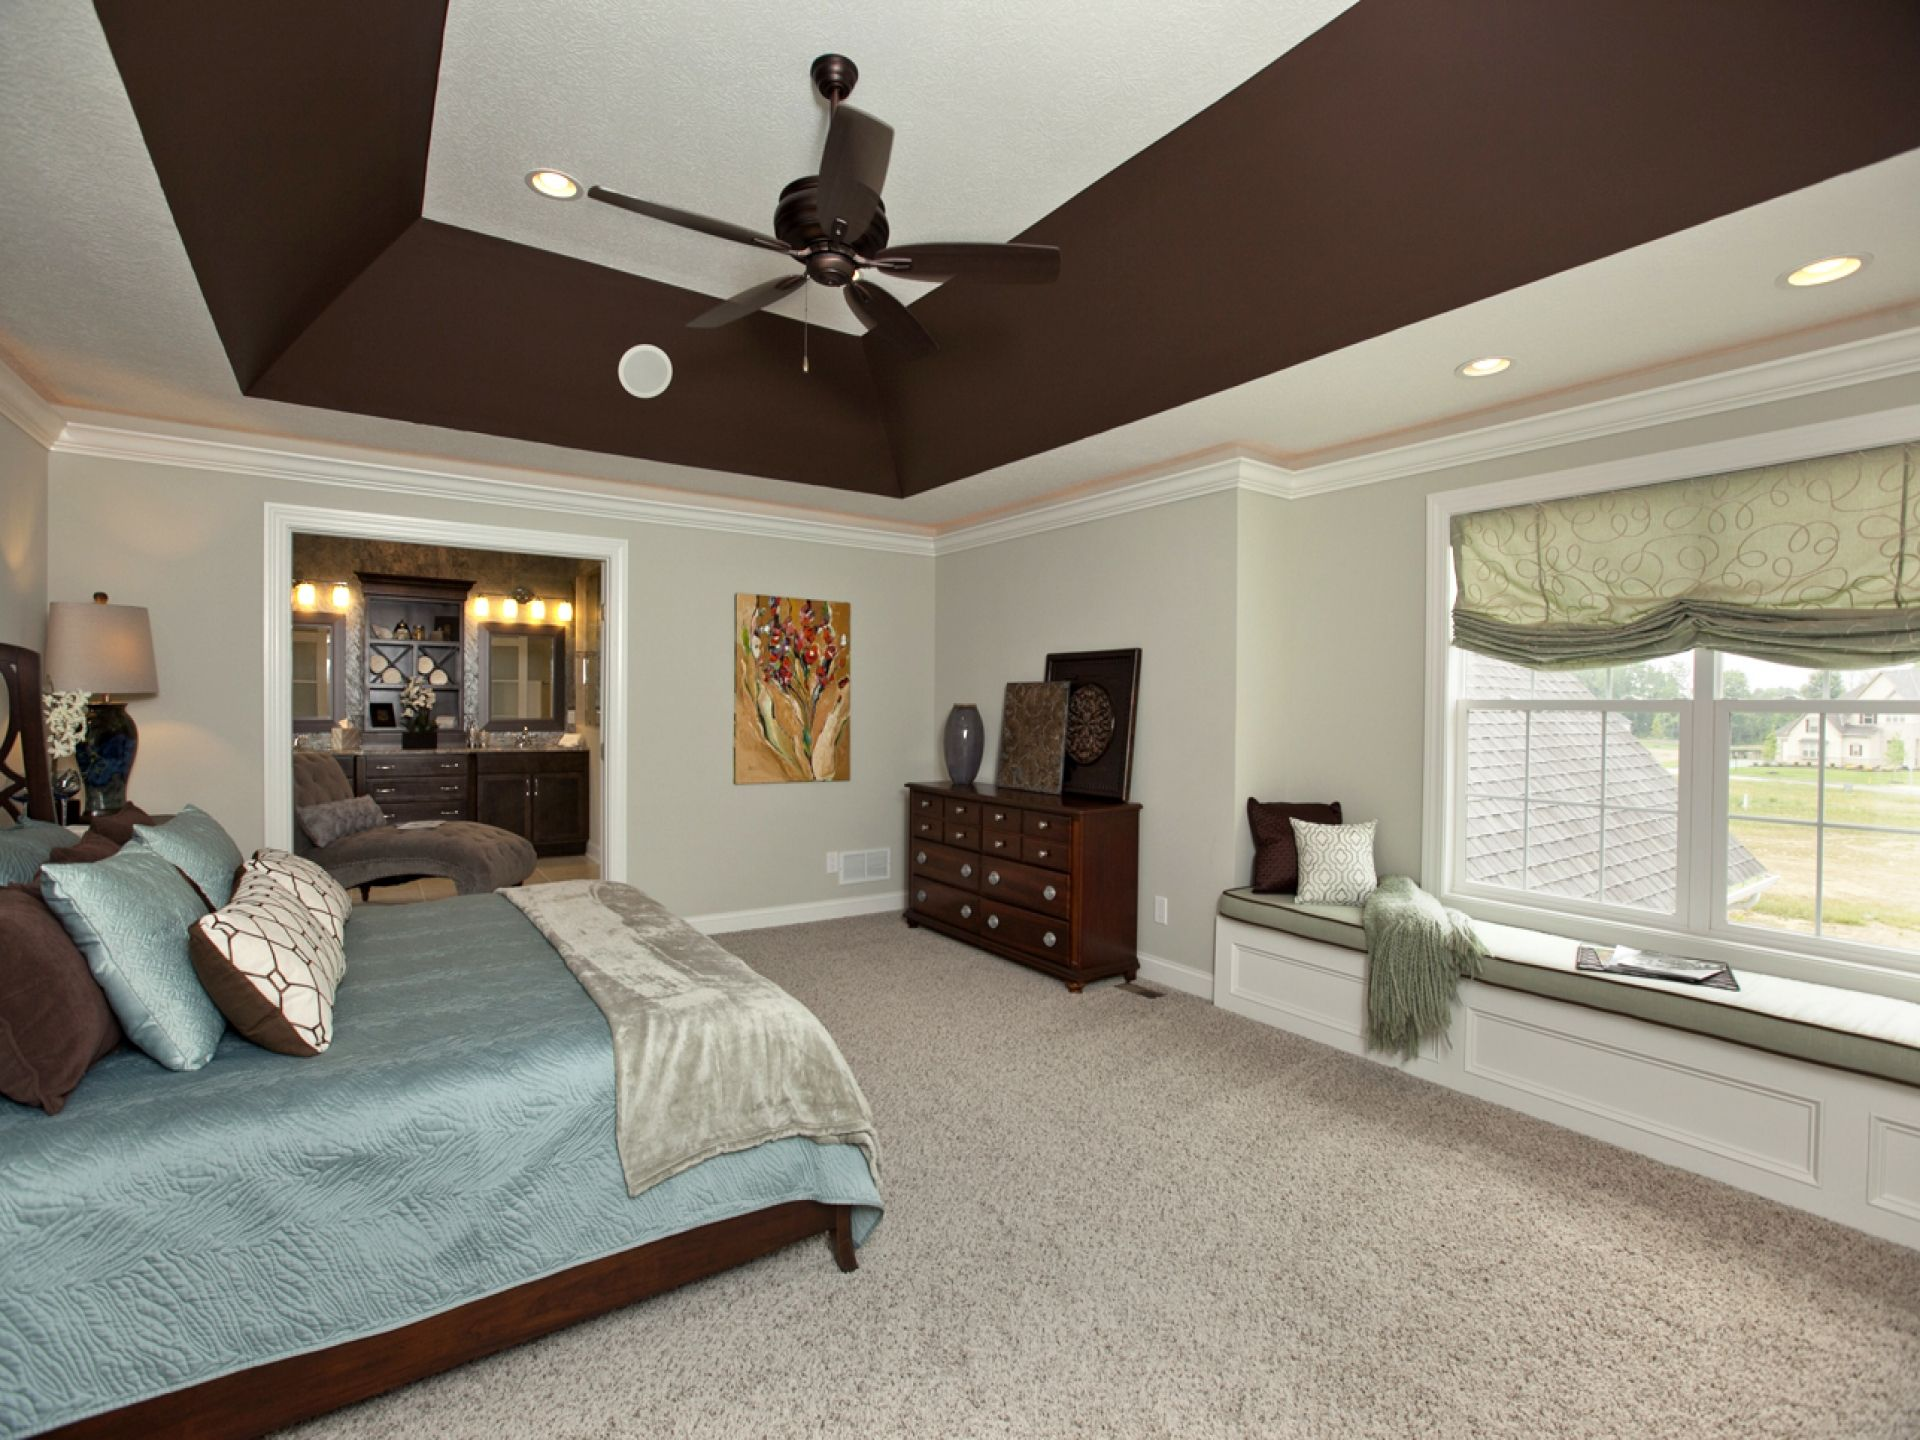 Deep Angled Tray Ceiling In Master Bedroom 3 Pillar Homes Bedroom